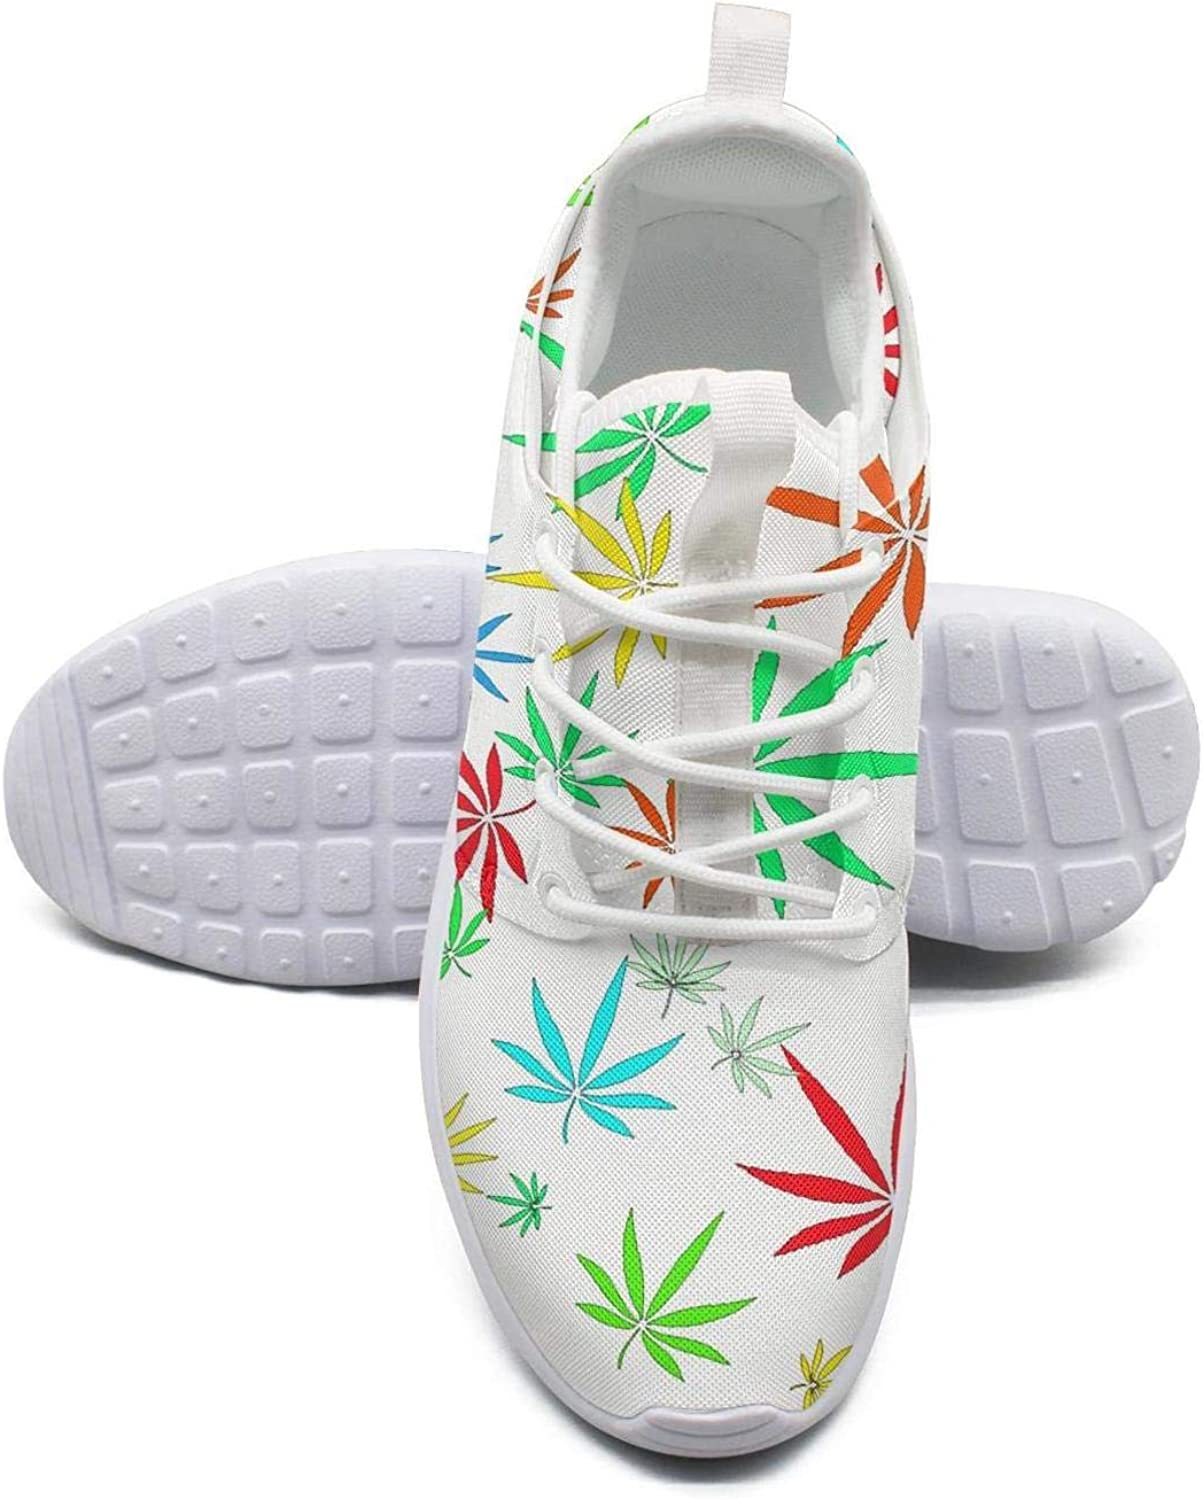 Gjsonmv Marijuana Weed Leaf mesh Lightweight shoes Women Dad Sports Workout Sneakers shoes